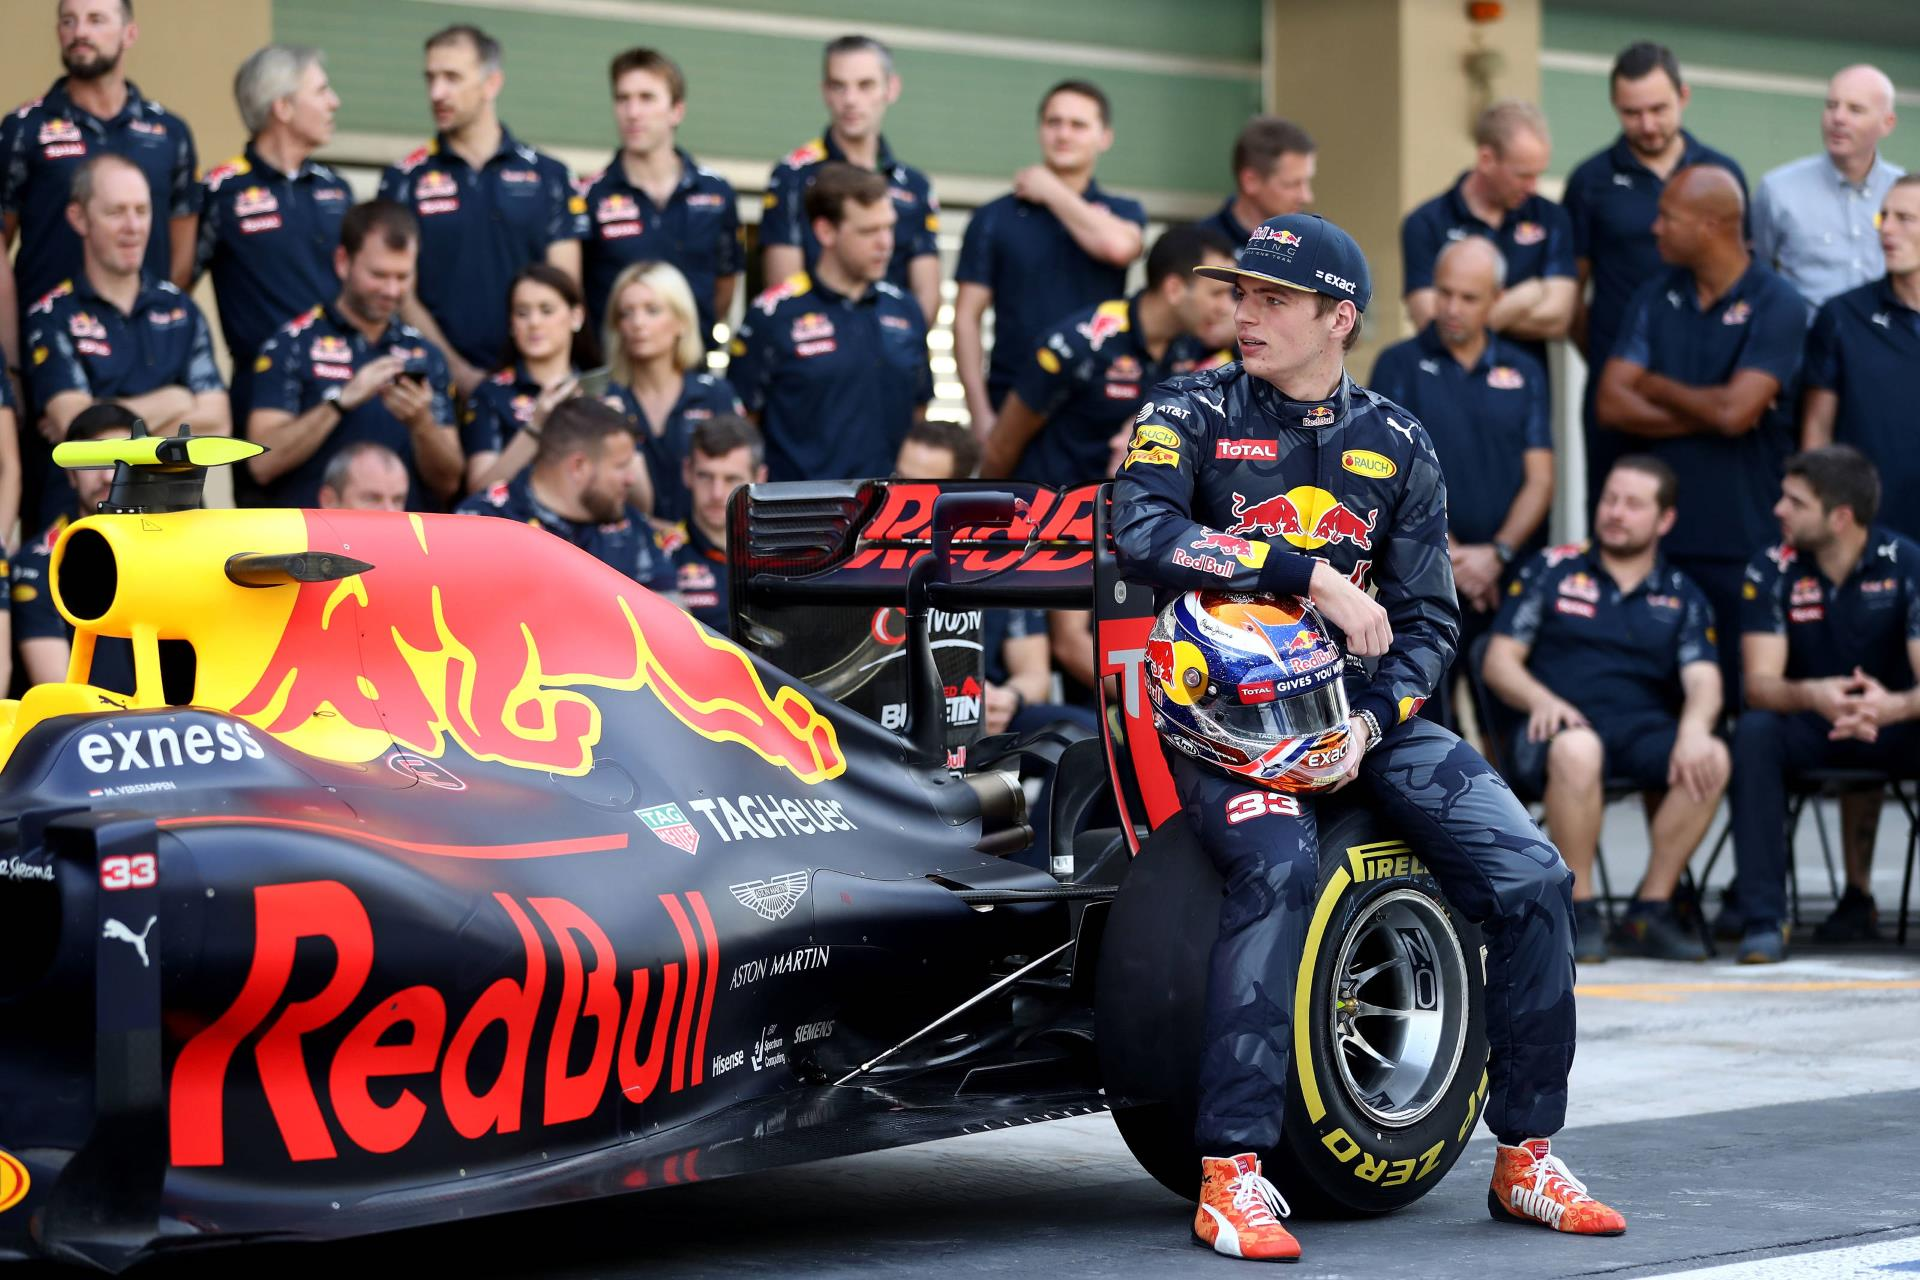 red-bull-racing-abu-dhabi-team-photo-2016-foto-red-bull